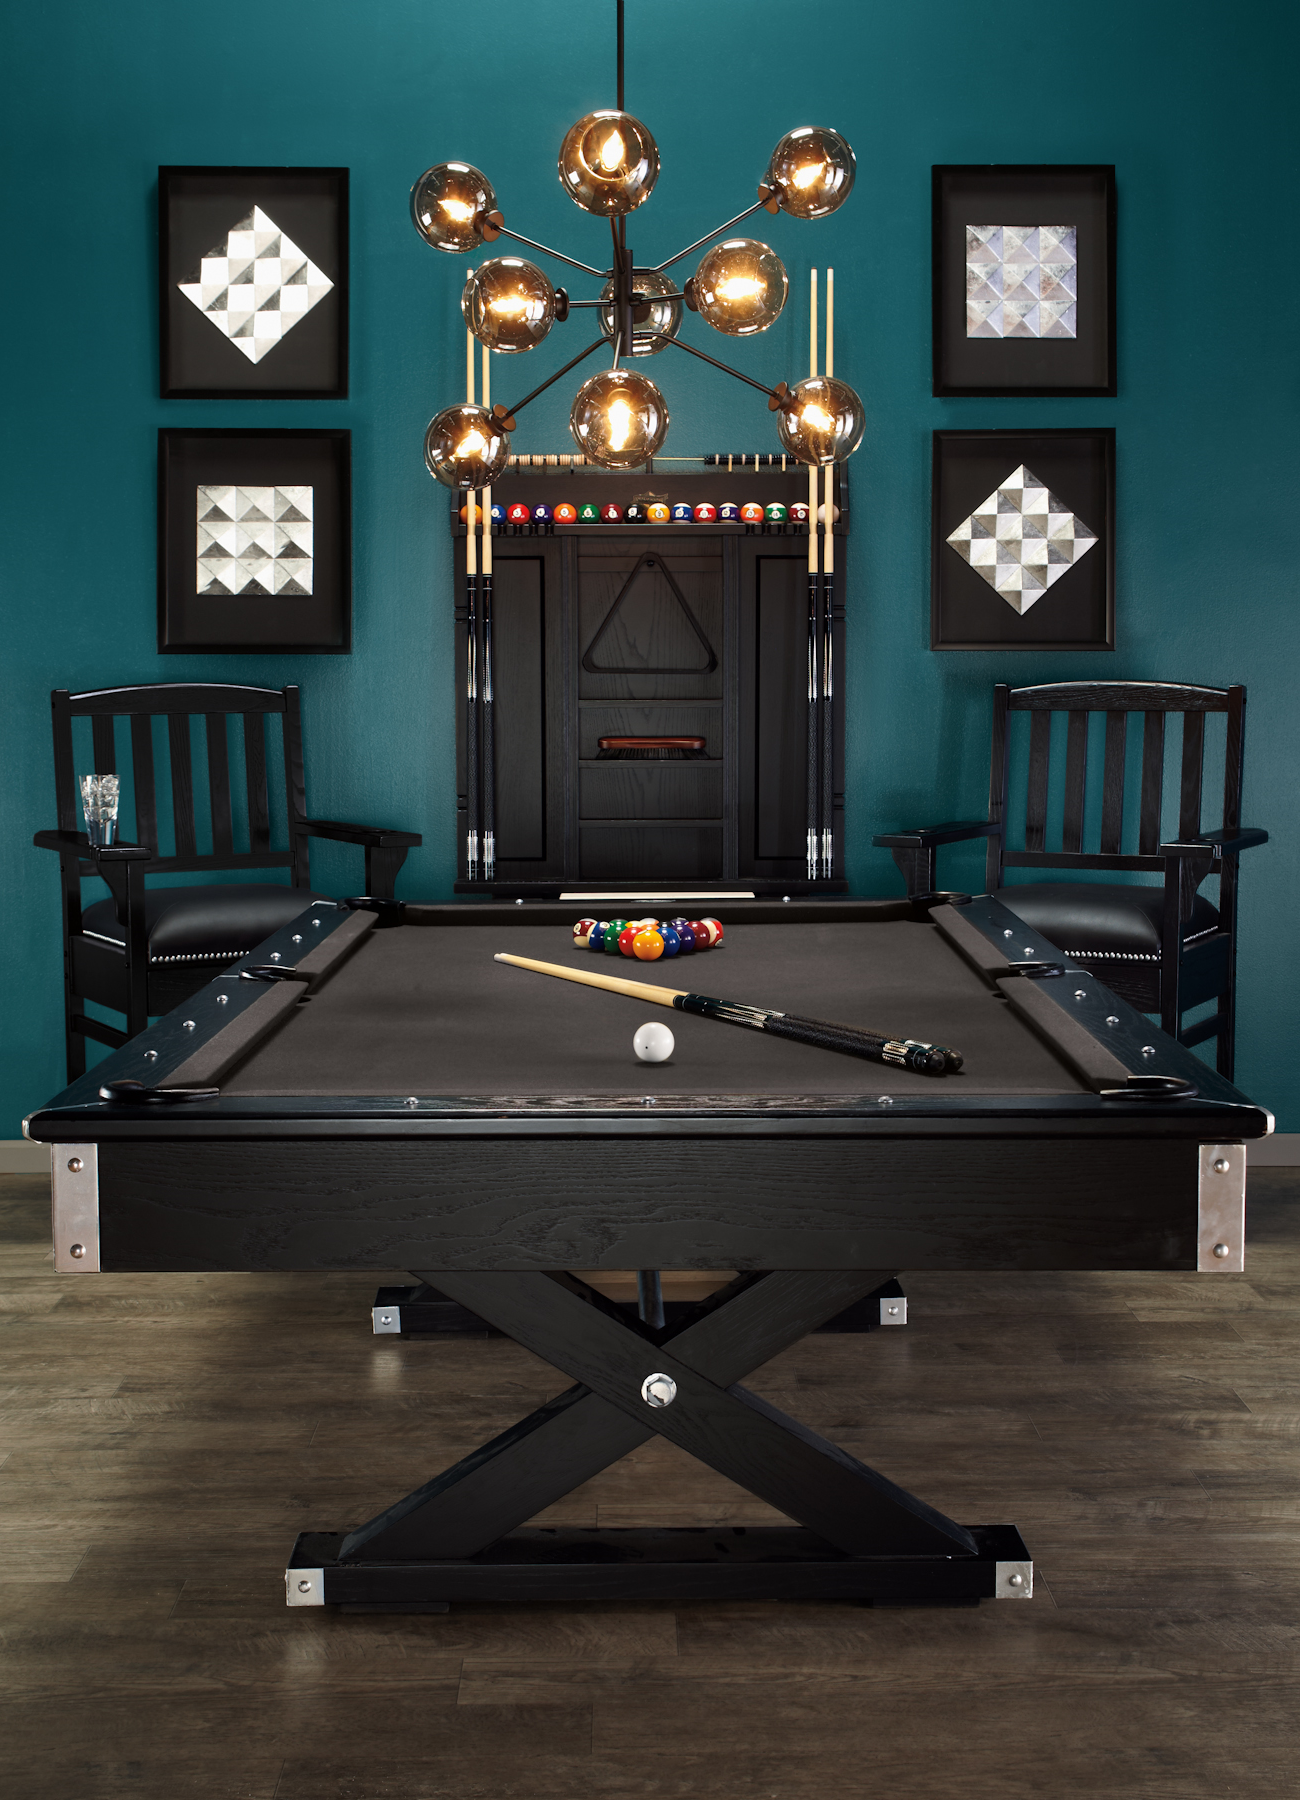 Cleaning expensive pool table fabric gives it longevity. Bring your game room to the next level of style. You won't ...